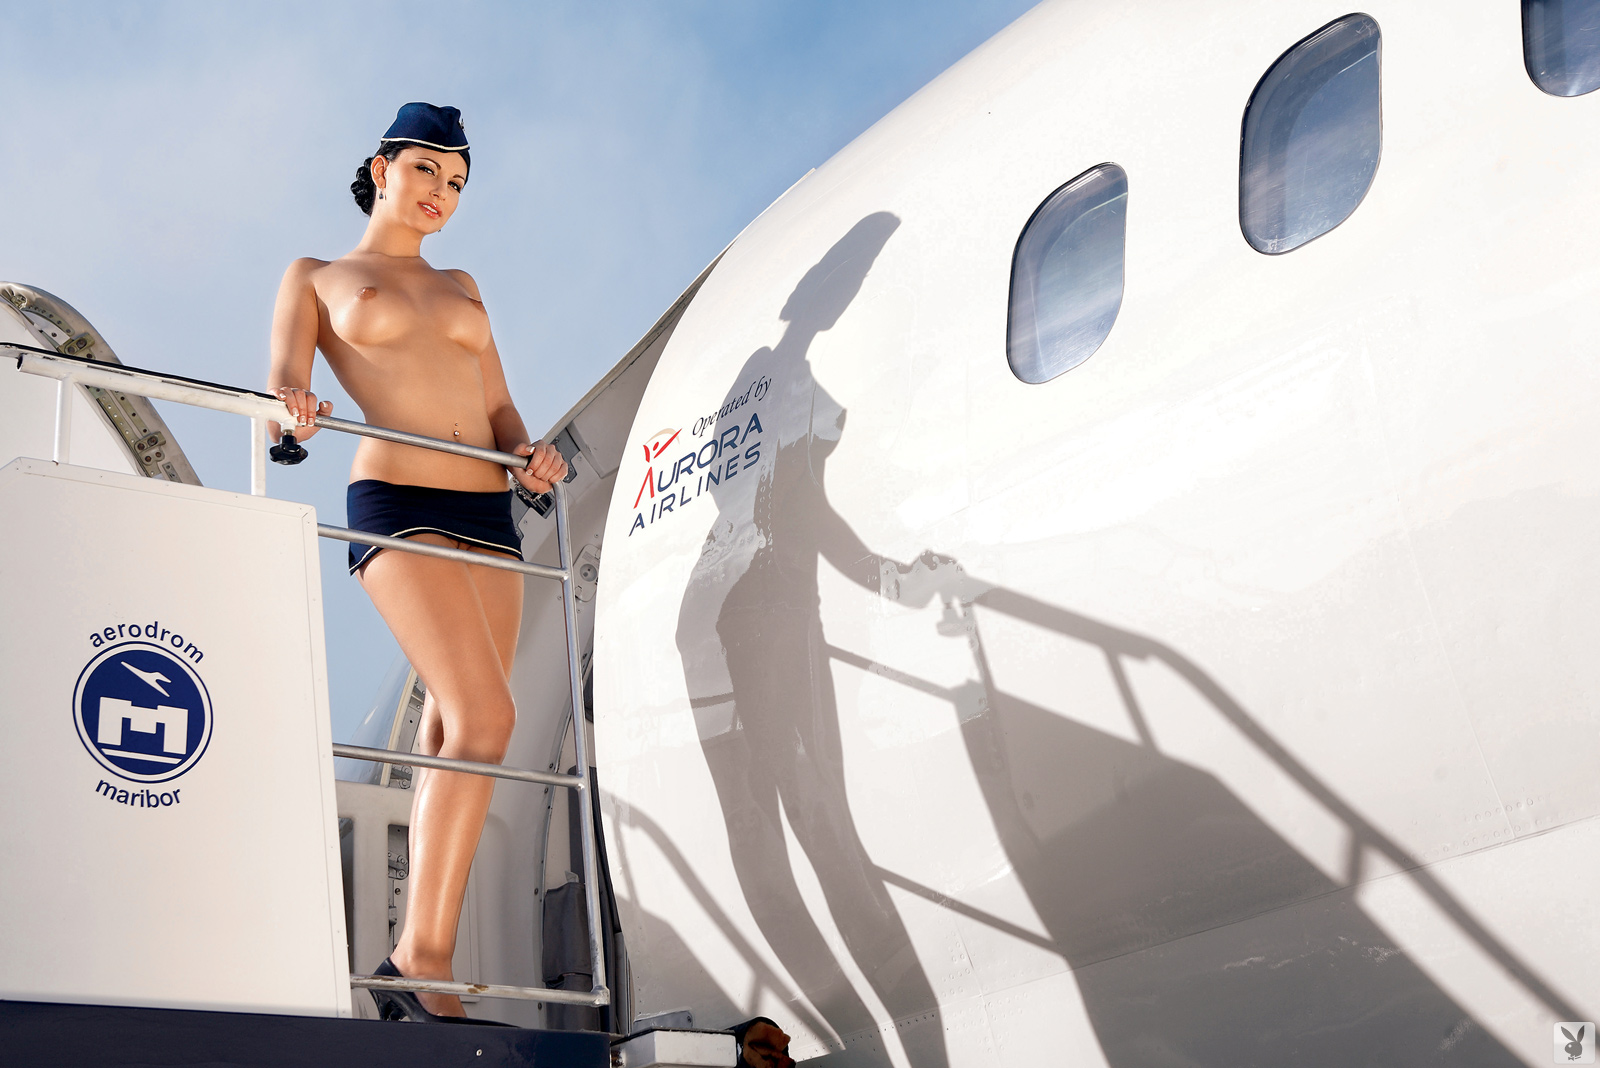 Air hostess helps out 8